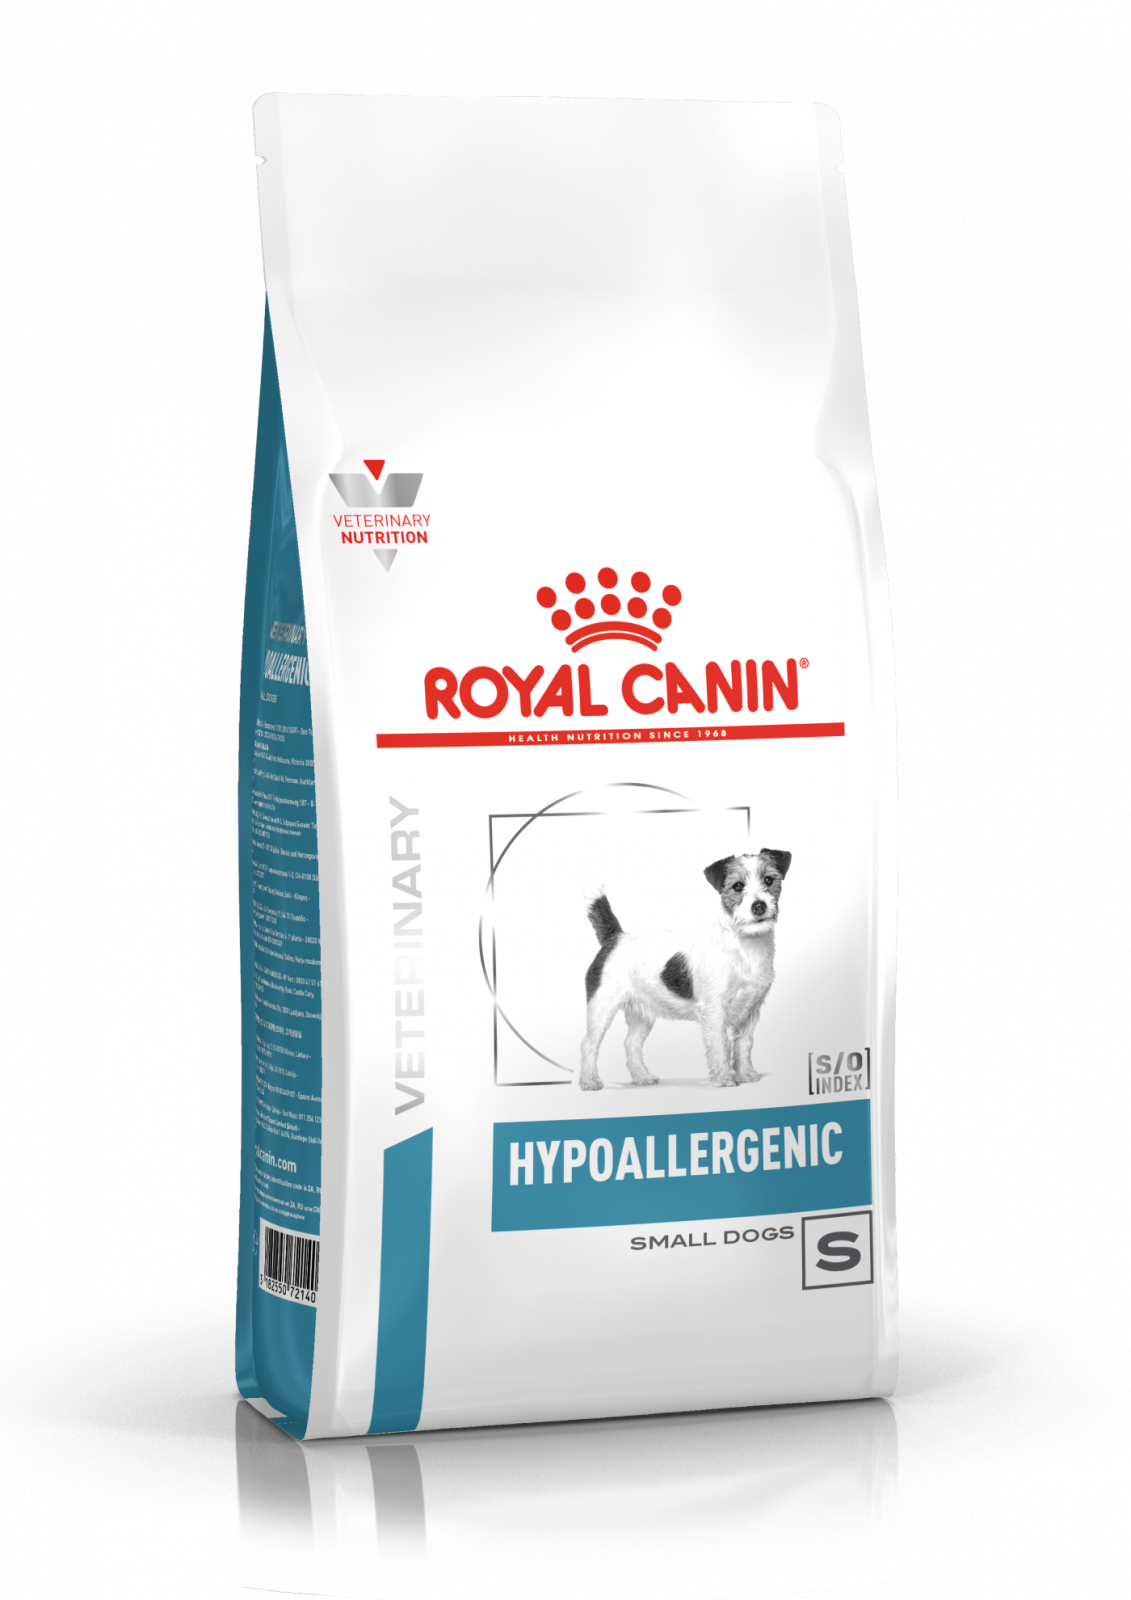 Hypoallergenic Small Dogs